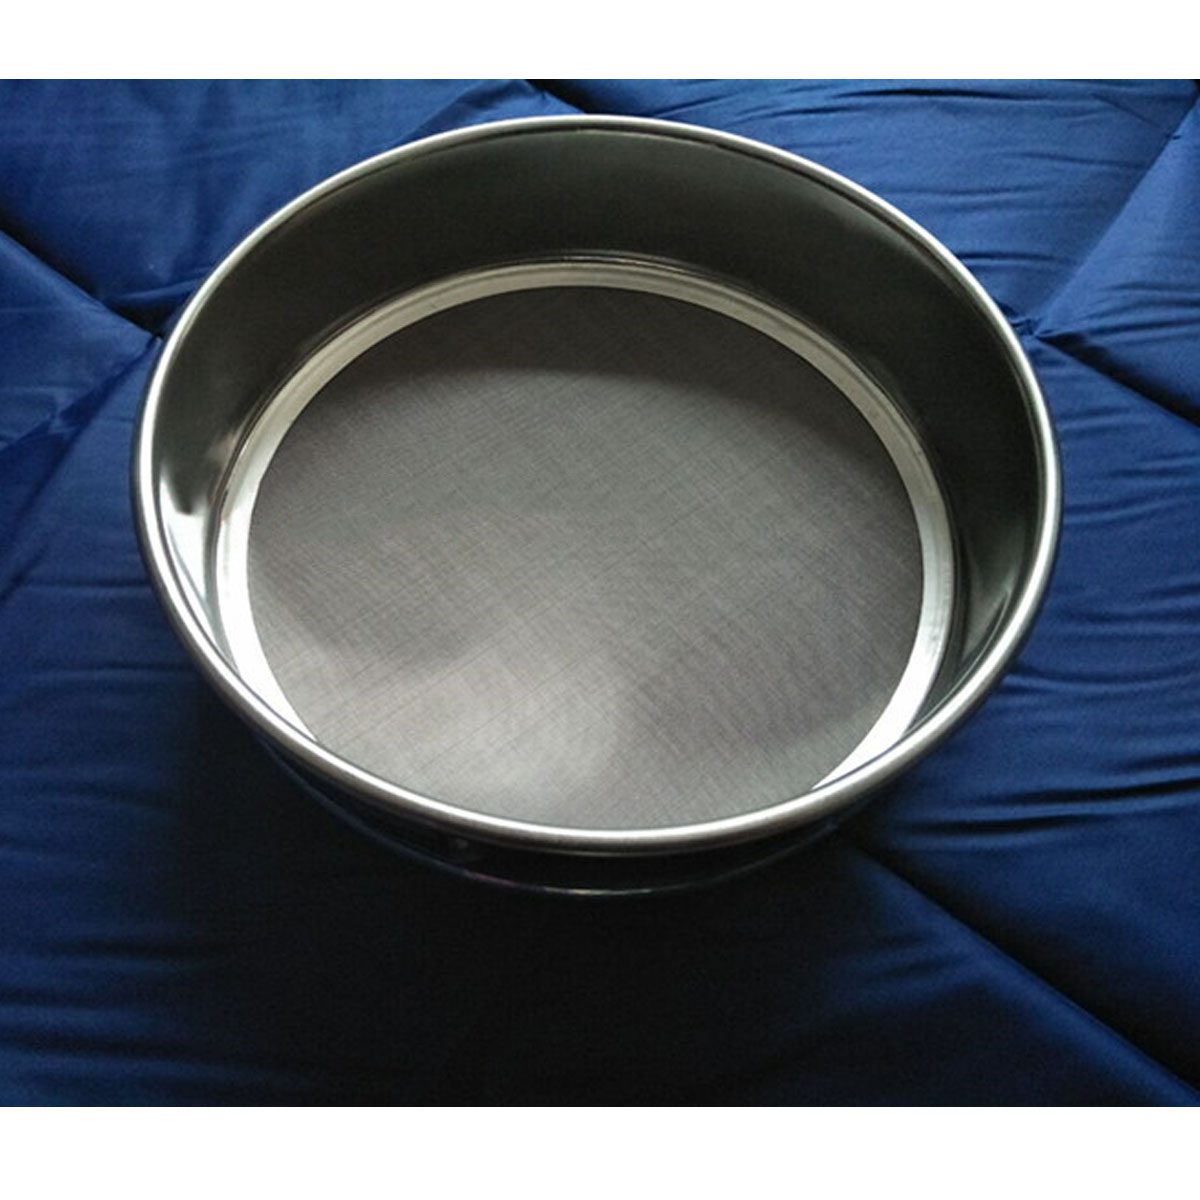 4-100 Mesh 4.75-0.15mm Dia 20cm Aperture Lab Standard Test Sieve Industrial Laboratory 304 Stainless Steel Test Sieve Tool Part